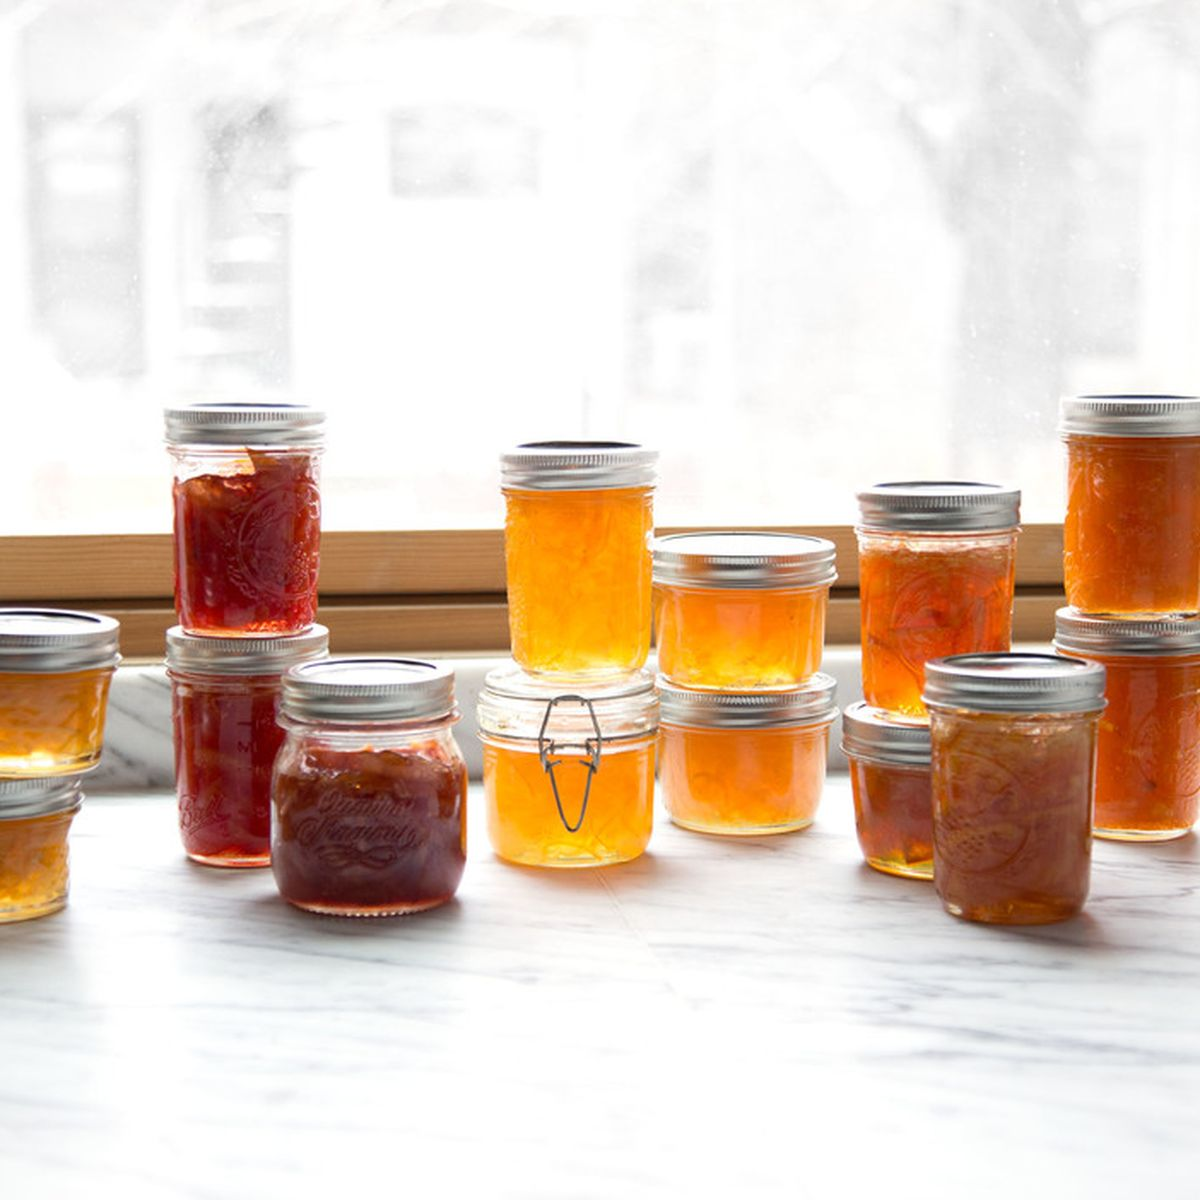 How to Make Marmalade at Home